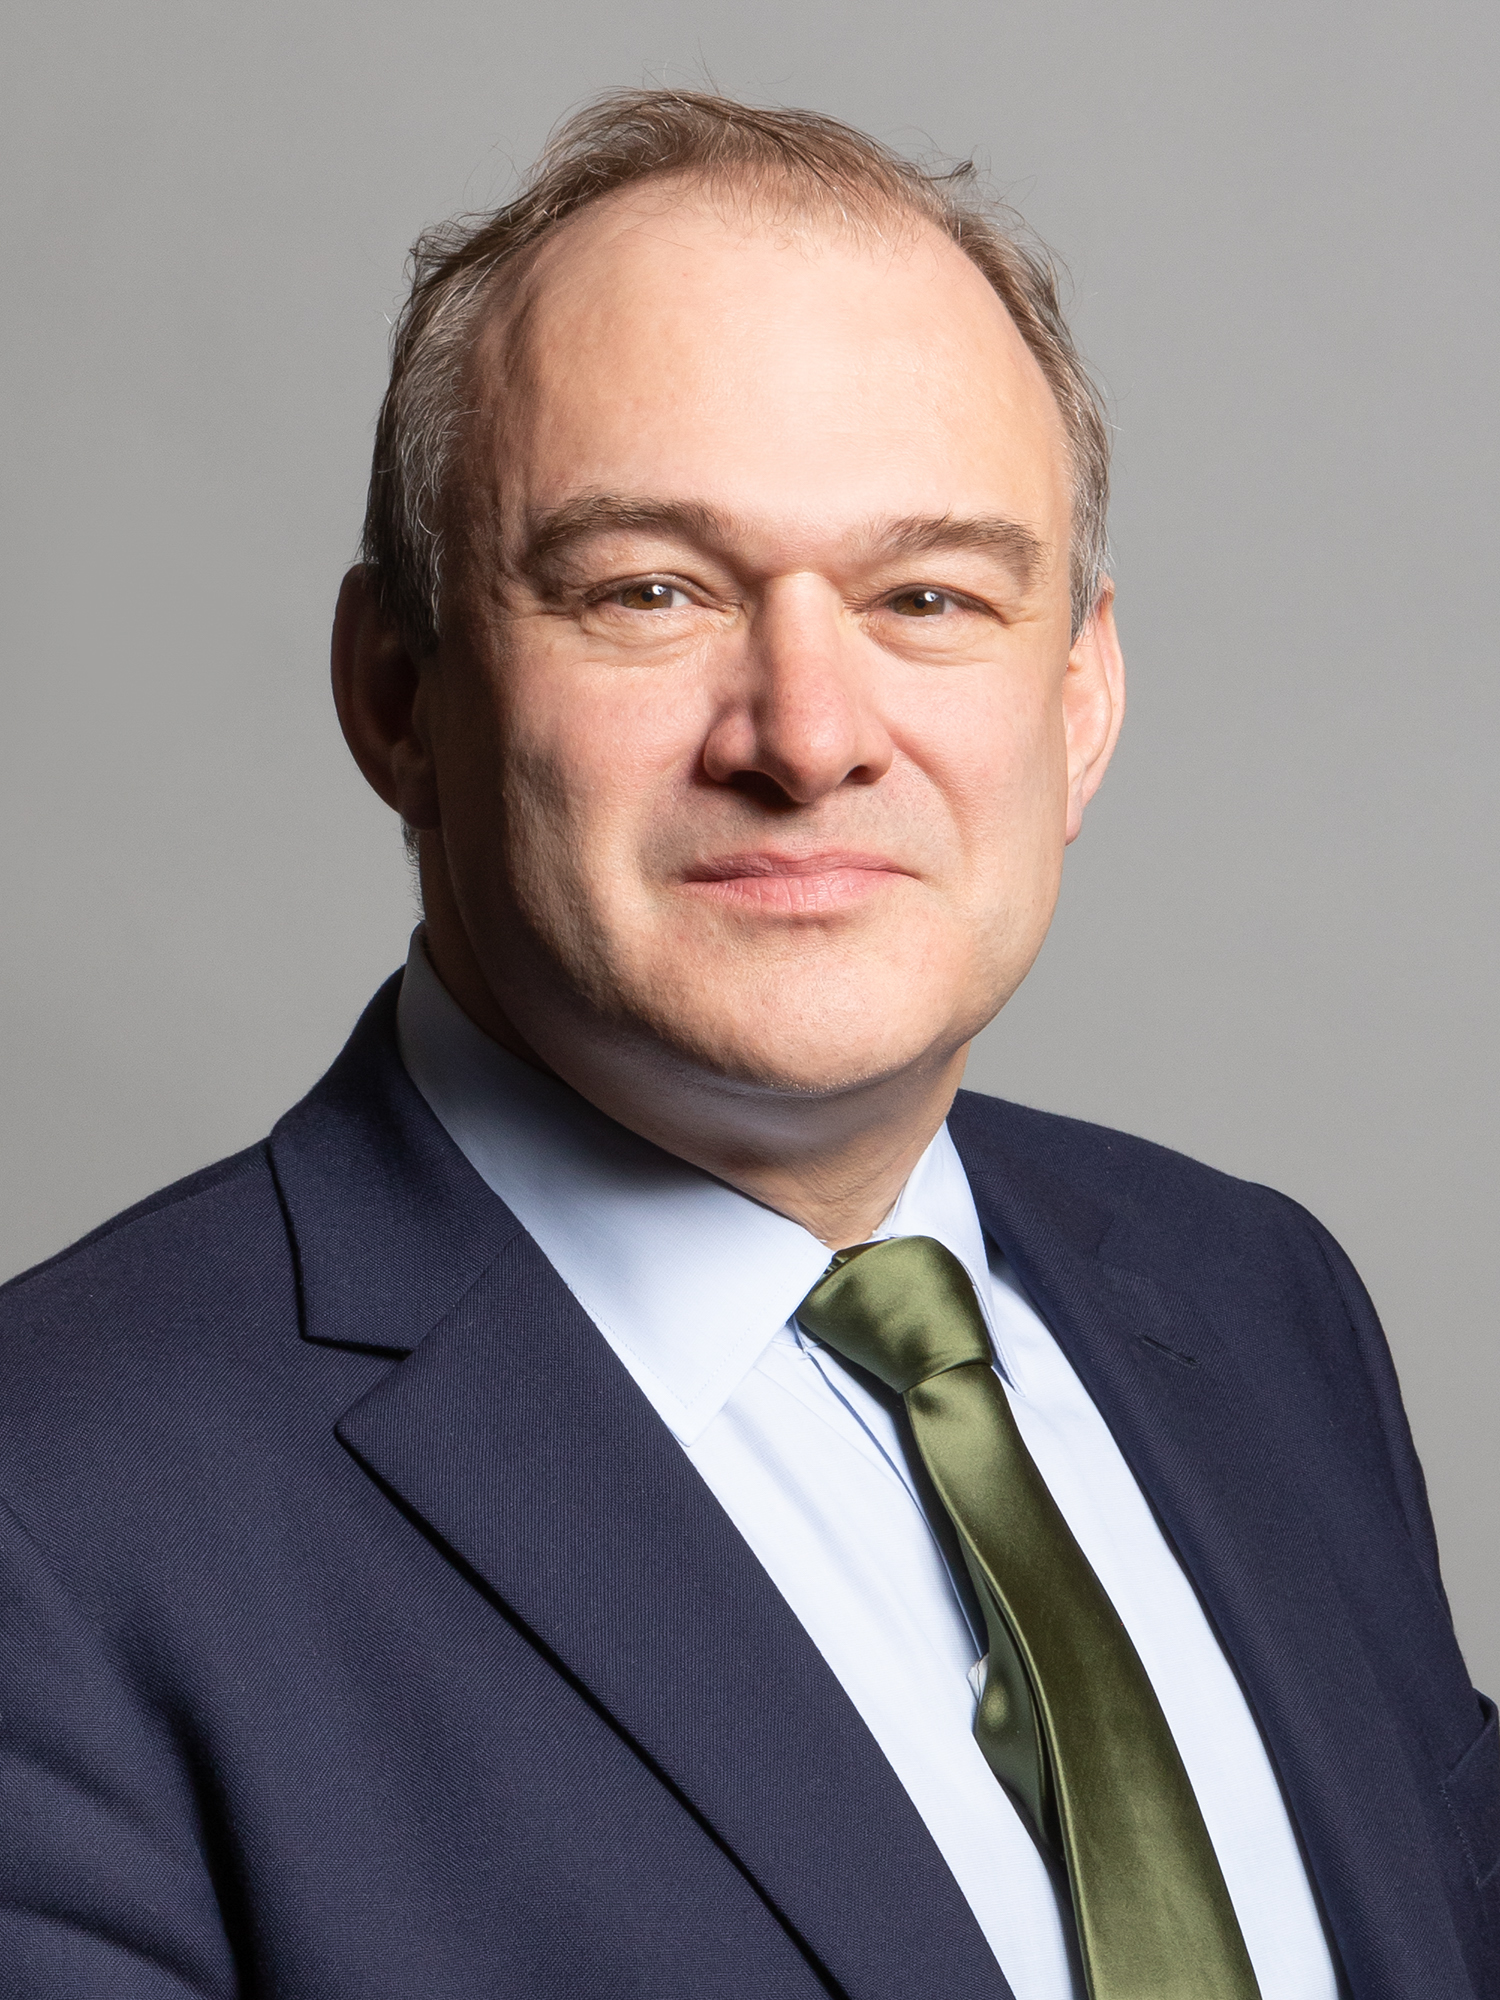 Official portrait of Rt Hon Sir Edward Davey MP crop 2.jpg